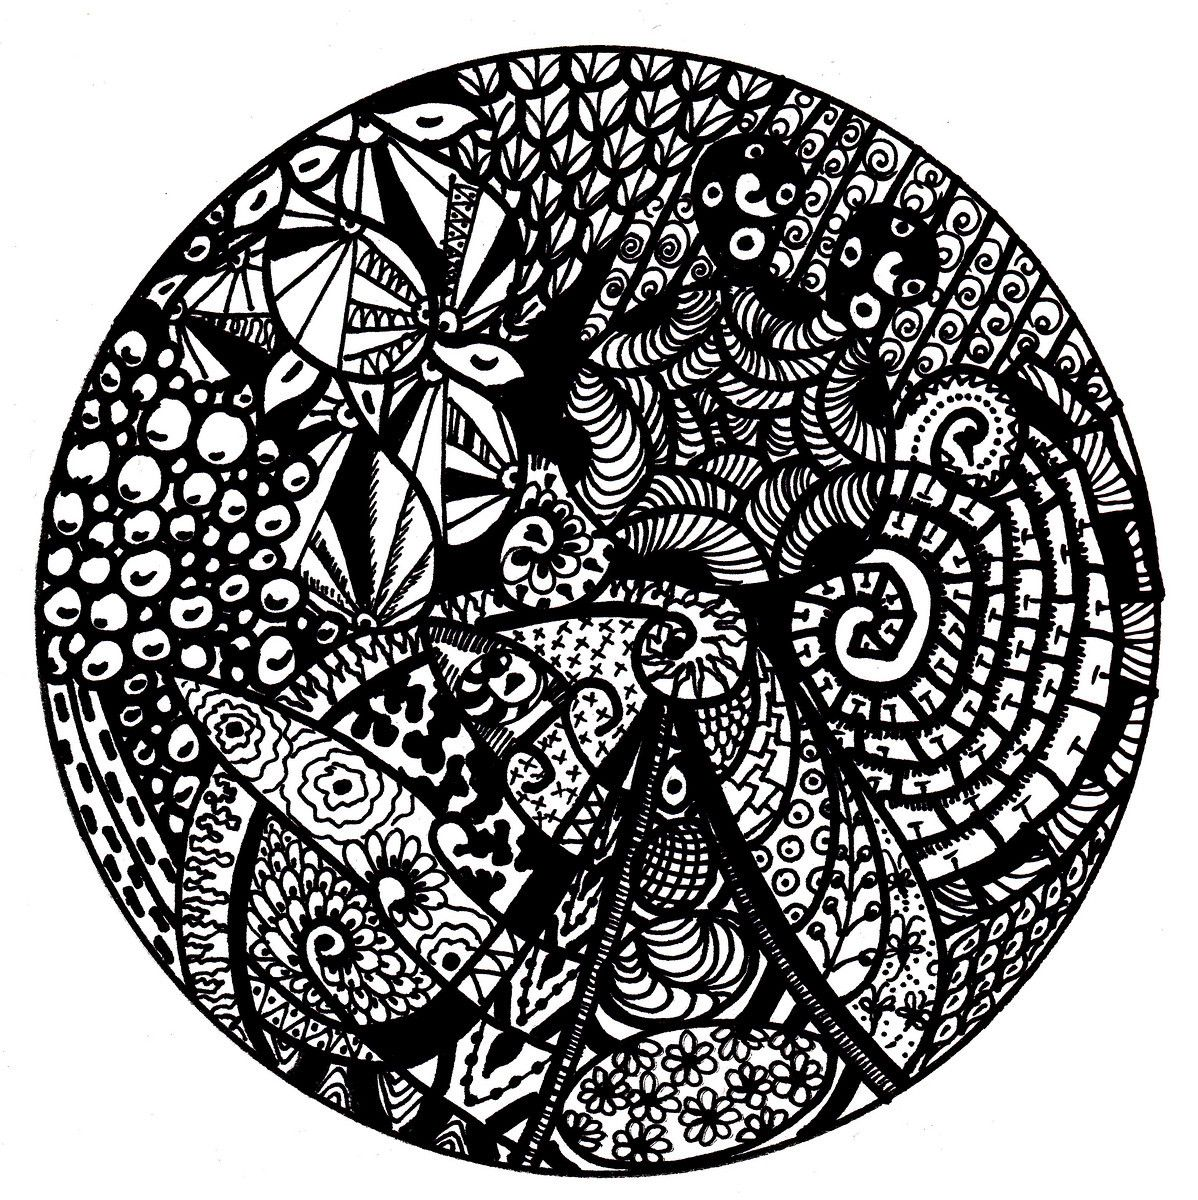 Printable coloring pages zentangle - Free Printable Mandala Coloring Pages Mandala Zentangle Style Drawing